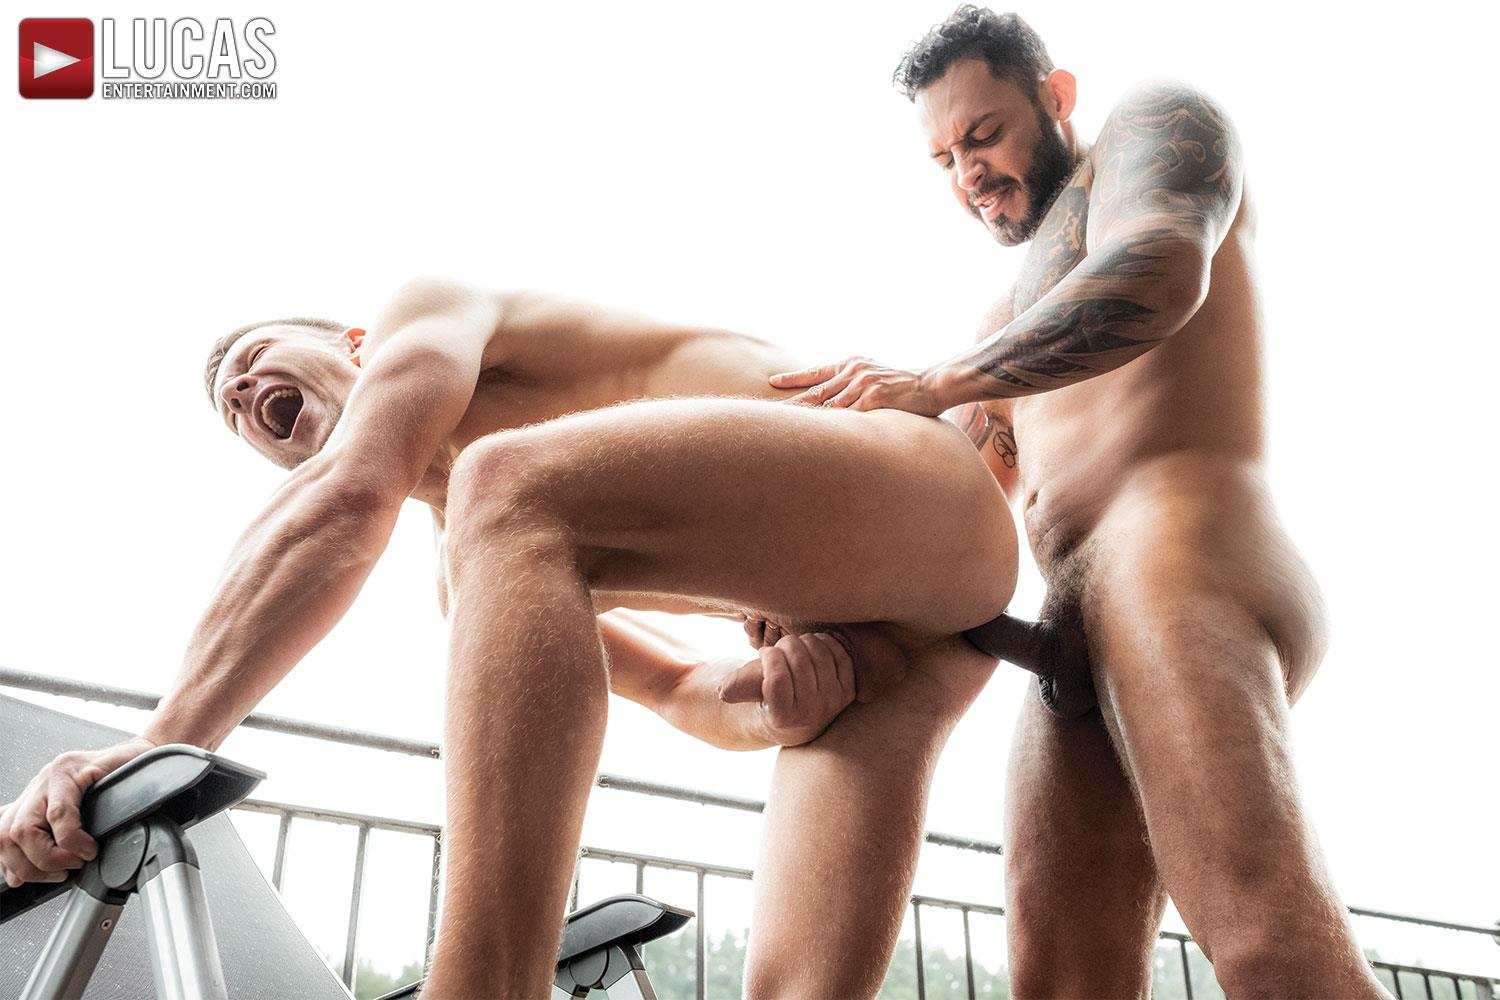 Lucas-Entertainment-Andrey-Vic-and-Viktor-Rom-Big-Uncut-Cock-Bareback-Video-04 Andrey Vic Gets Barebacked By Viktor Rom's Big Thick Uncut Cock